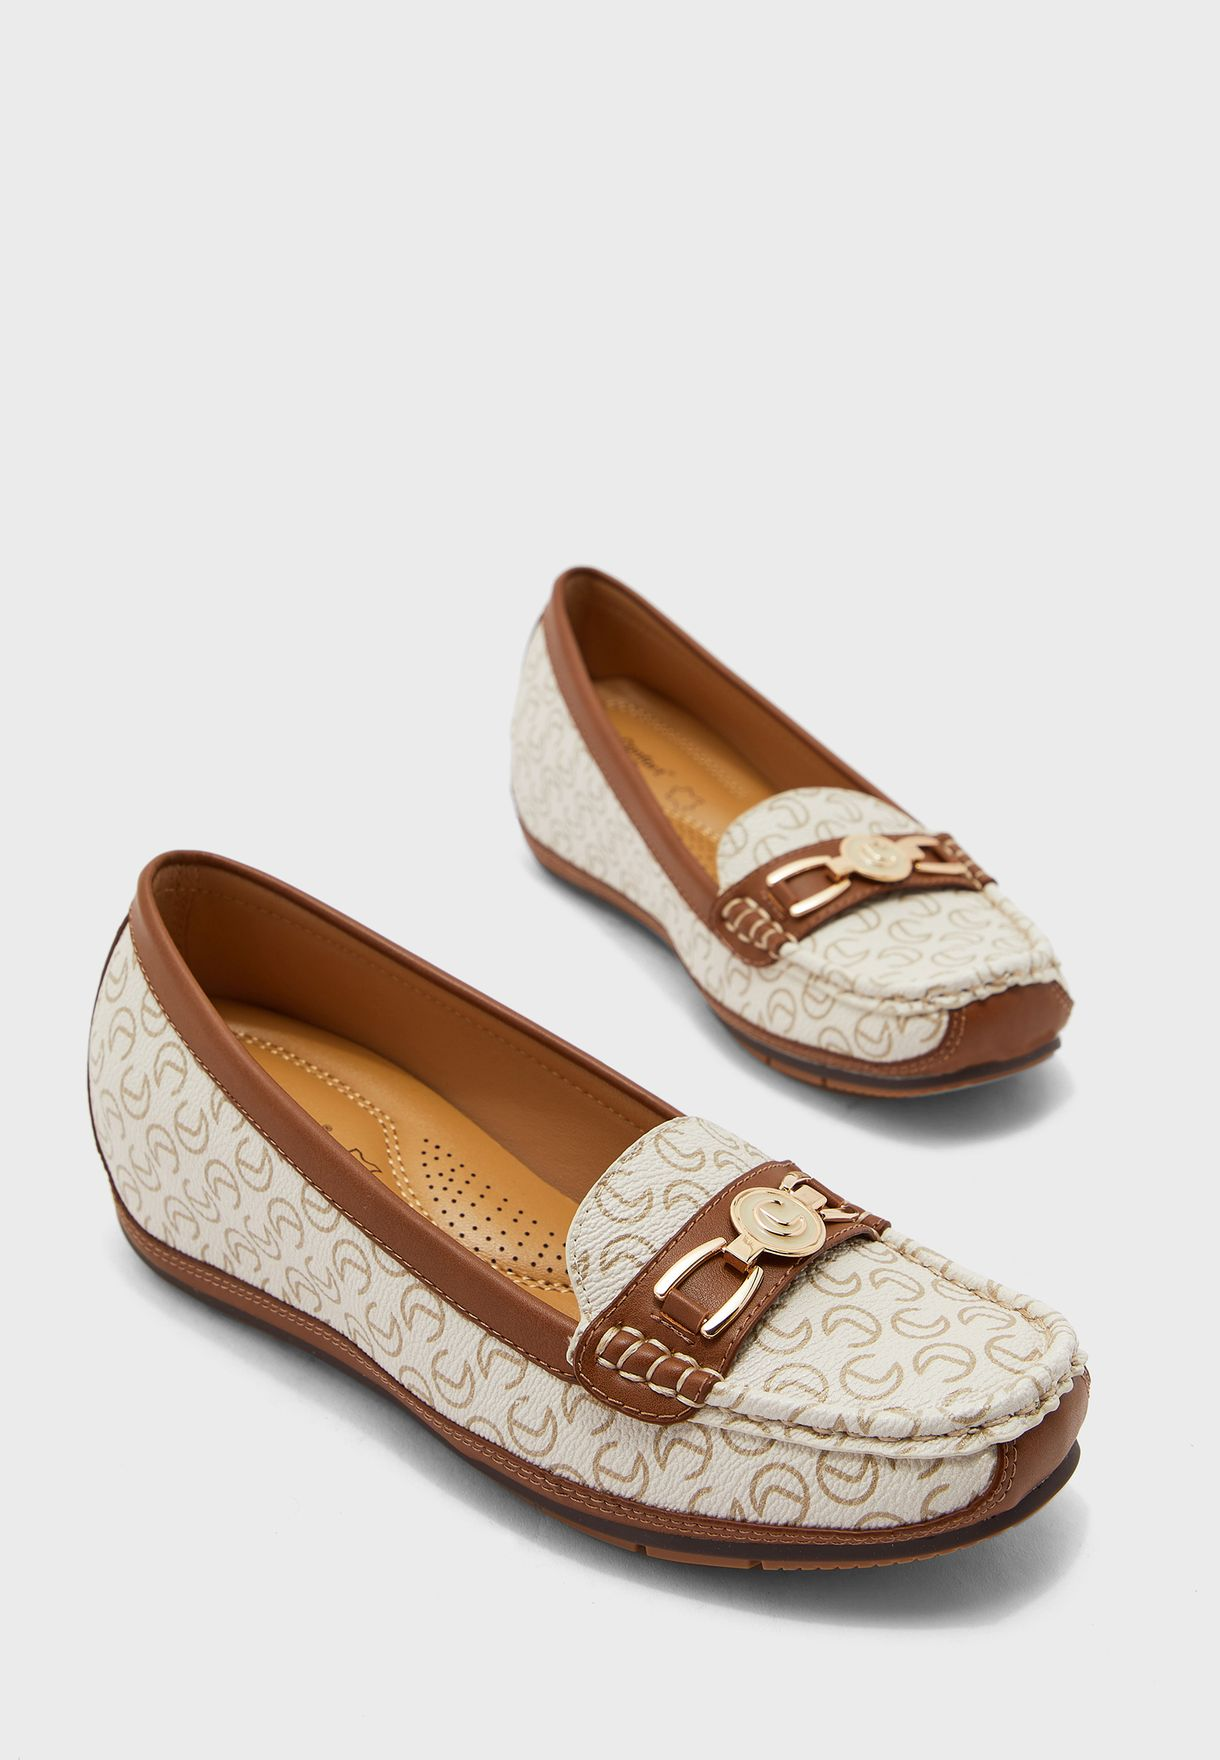 Printed Moccasin